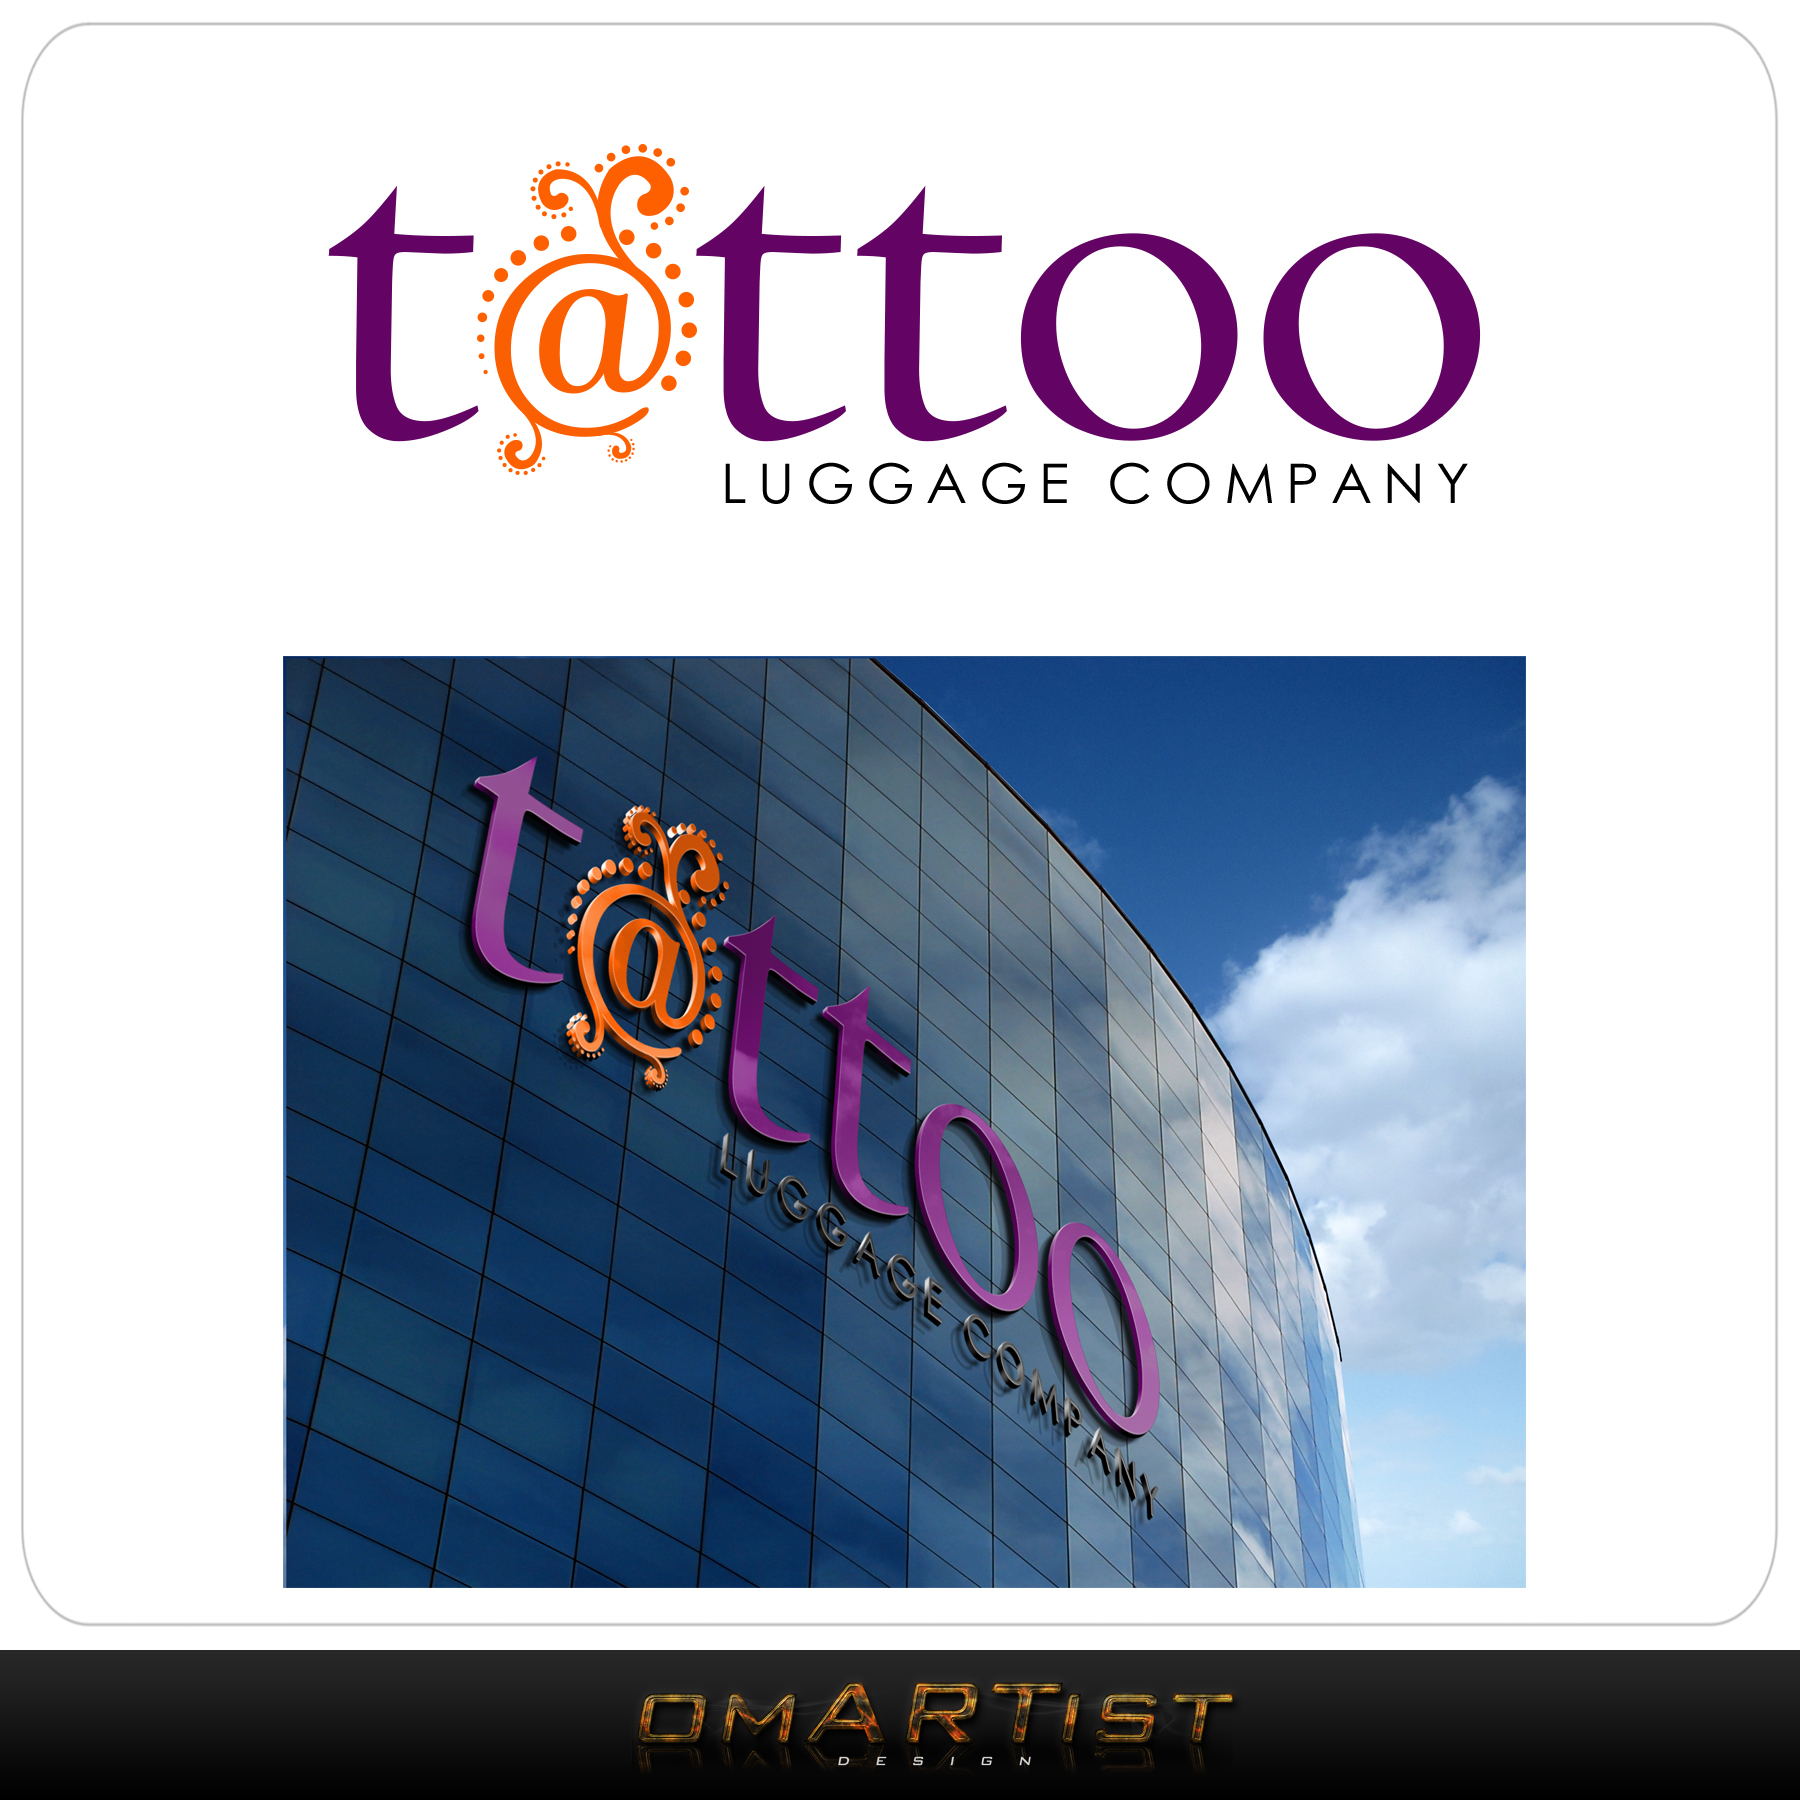 Logo Design by omARTist - Entry No. 162 in the Logo Design Contest Artistic Logo Design for Tattoo Luggage Company.